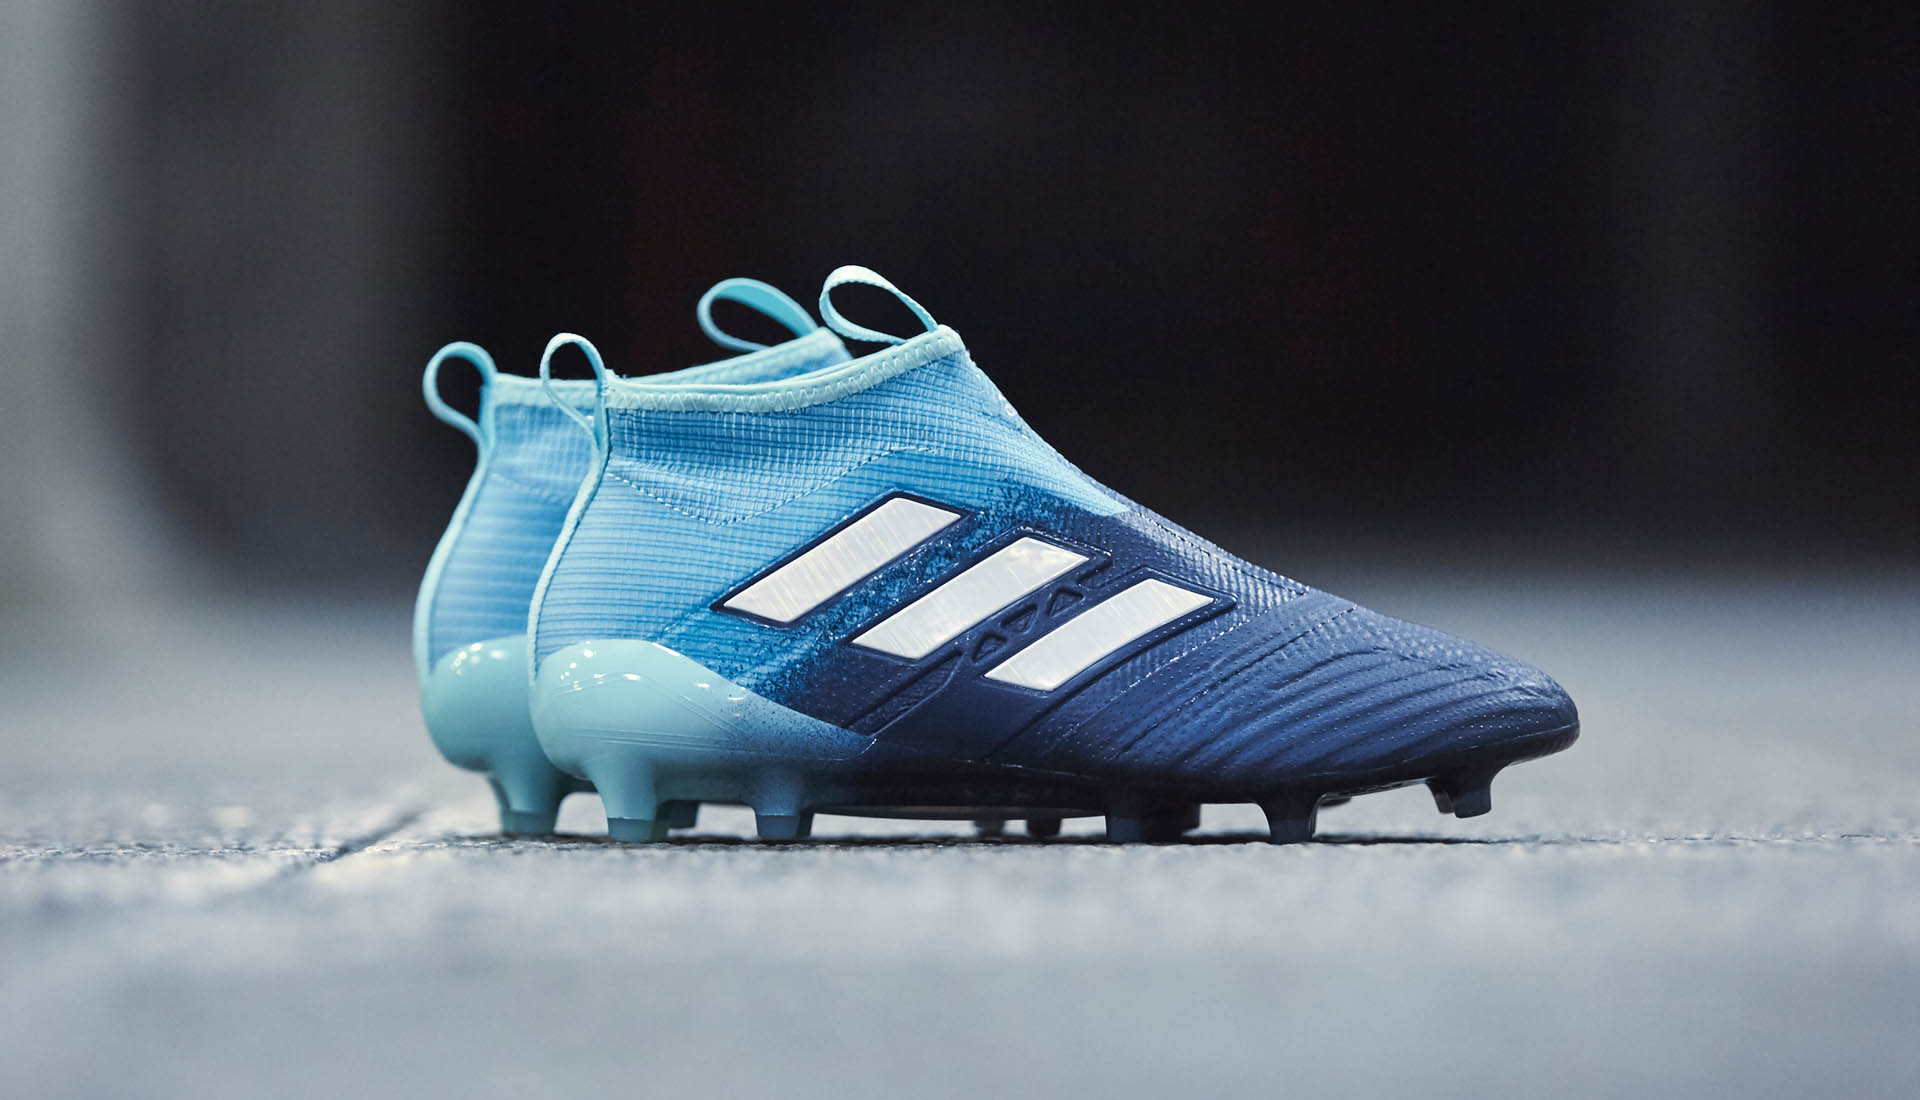 adidas ACE 17+ Purecontrol Ocean Storm Football Boots